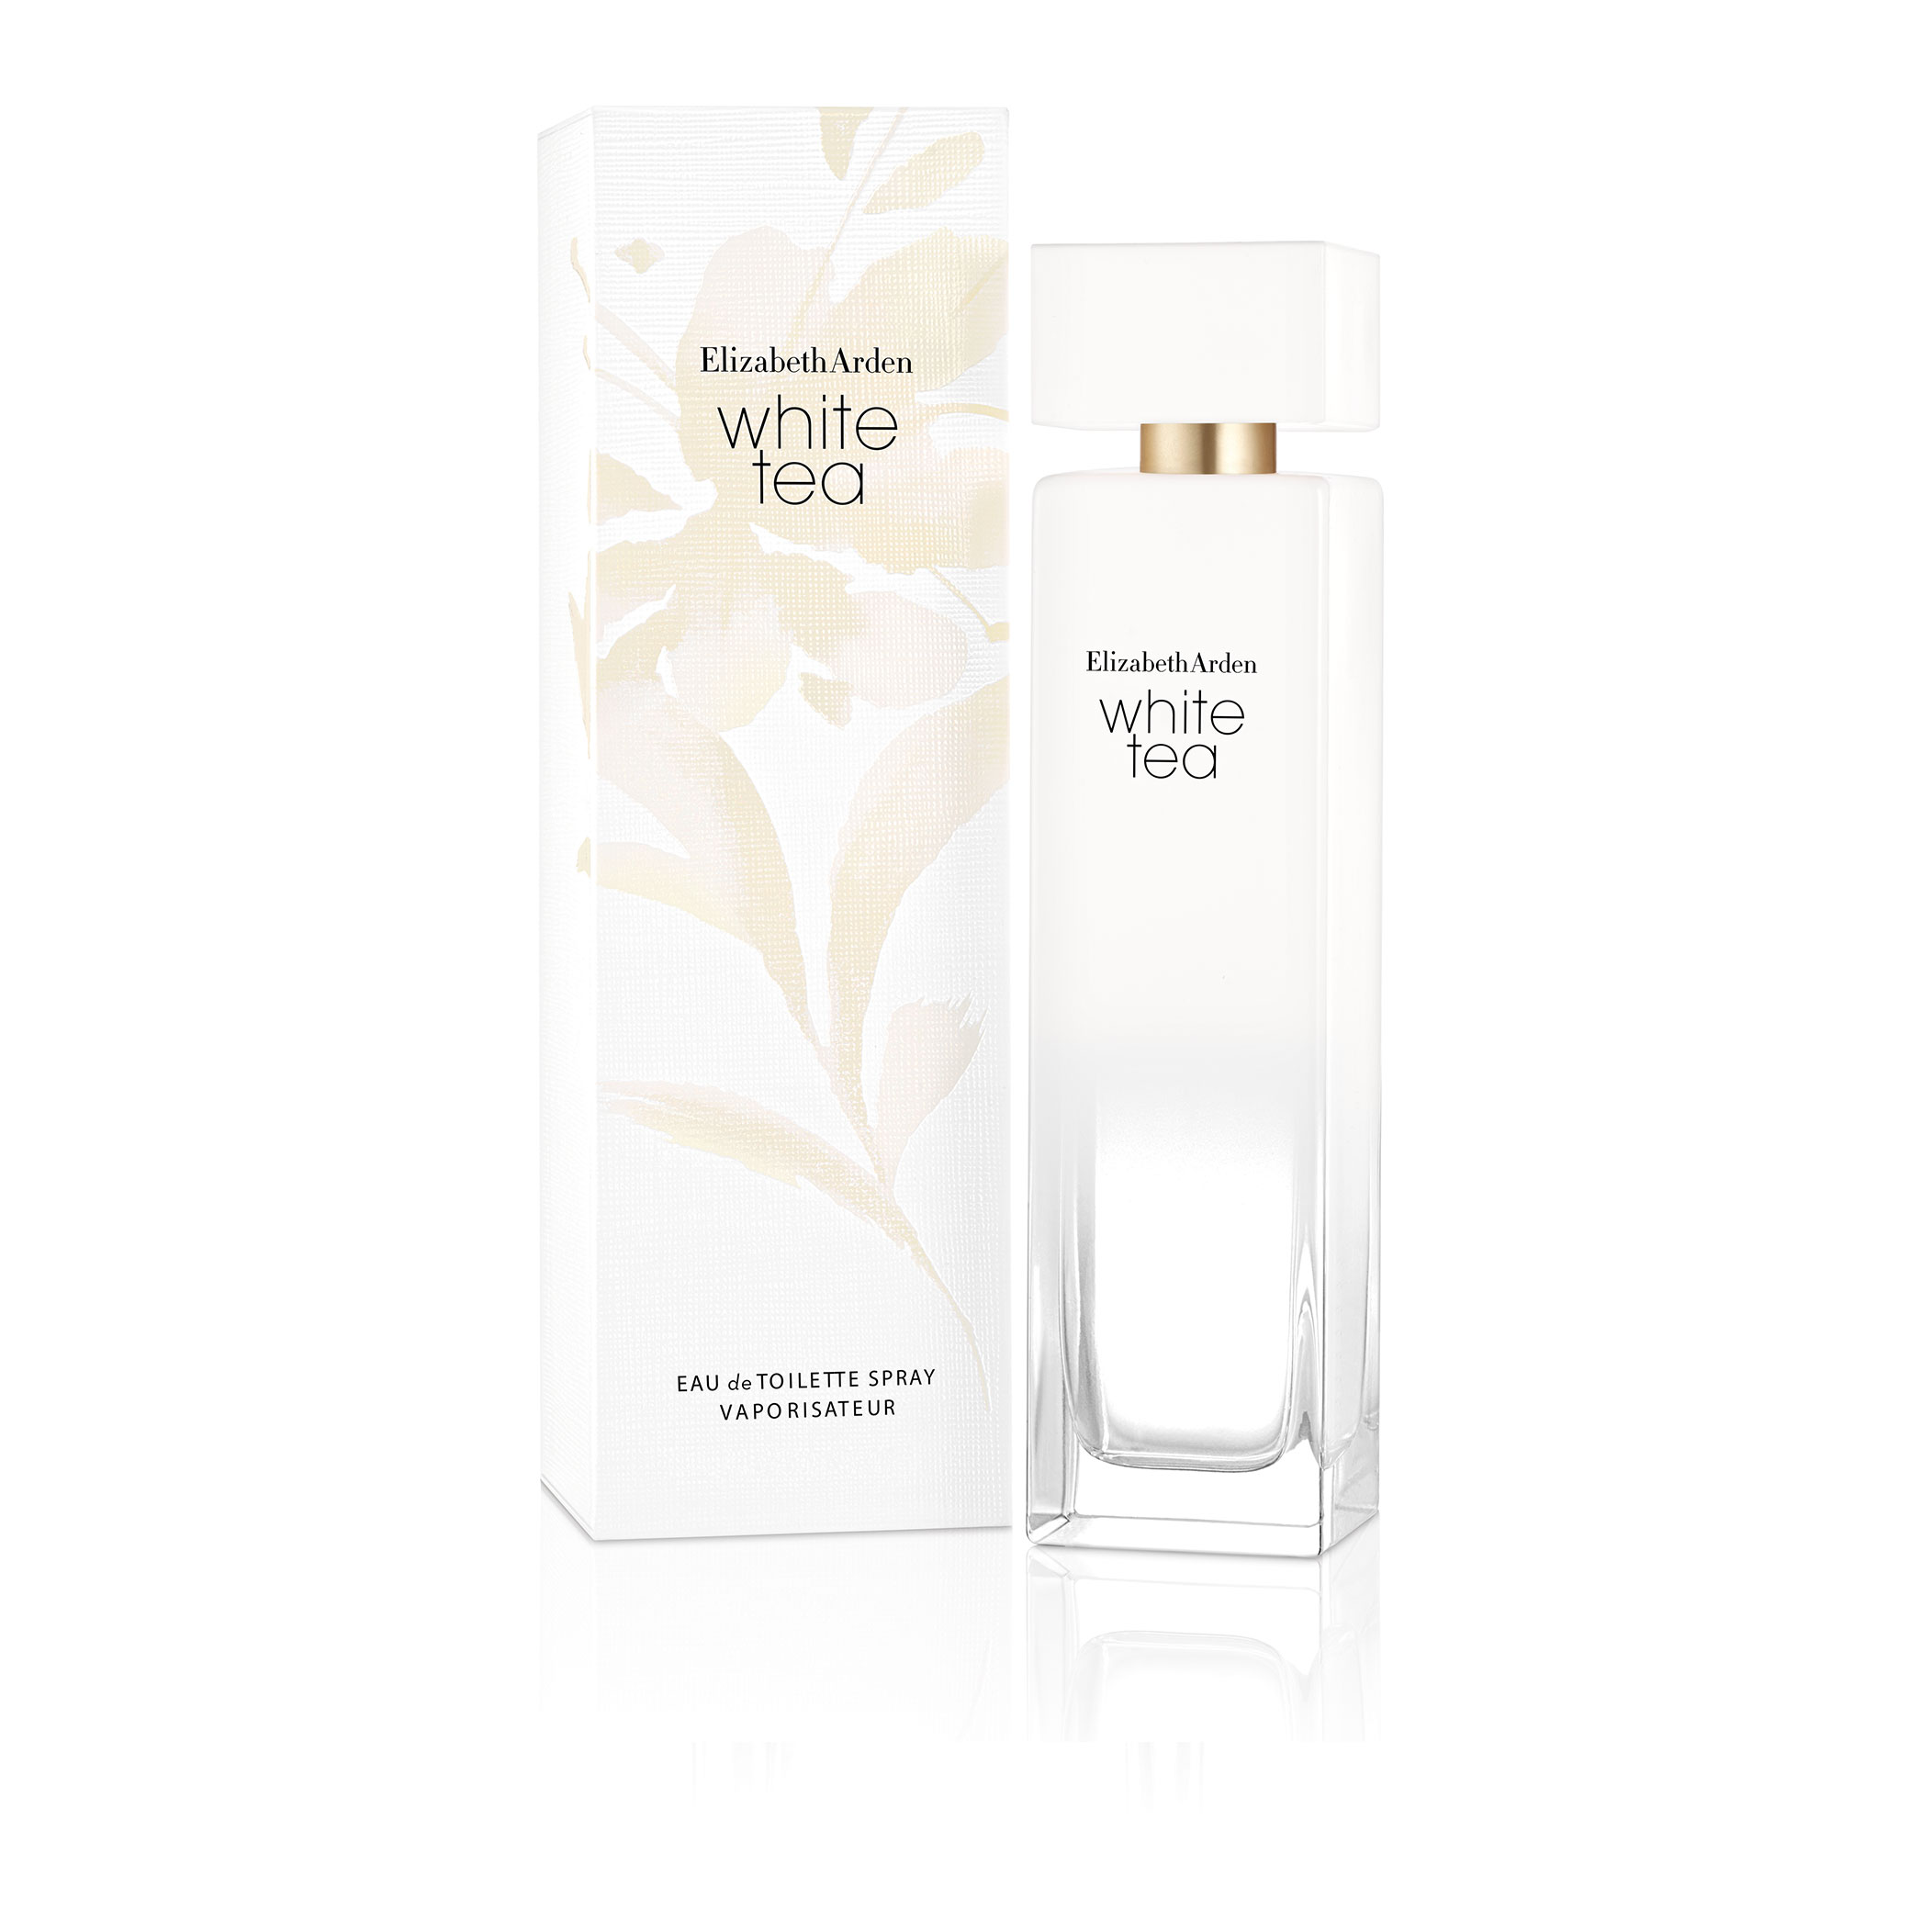 Туалетная вода Elizabeth Arden White Tea 30ml фото